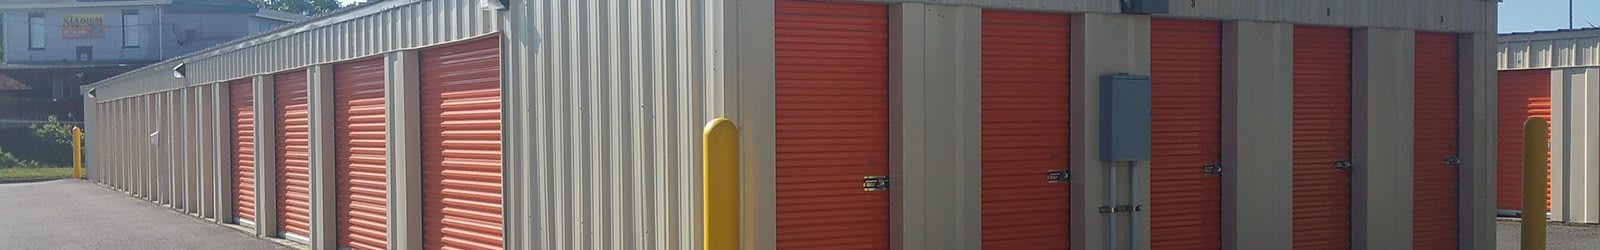 Self storage units in Hagerstown